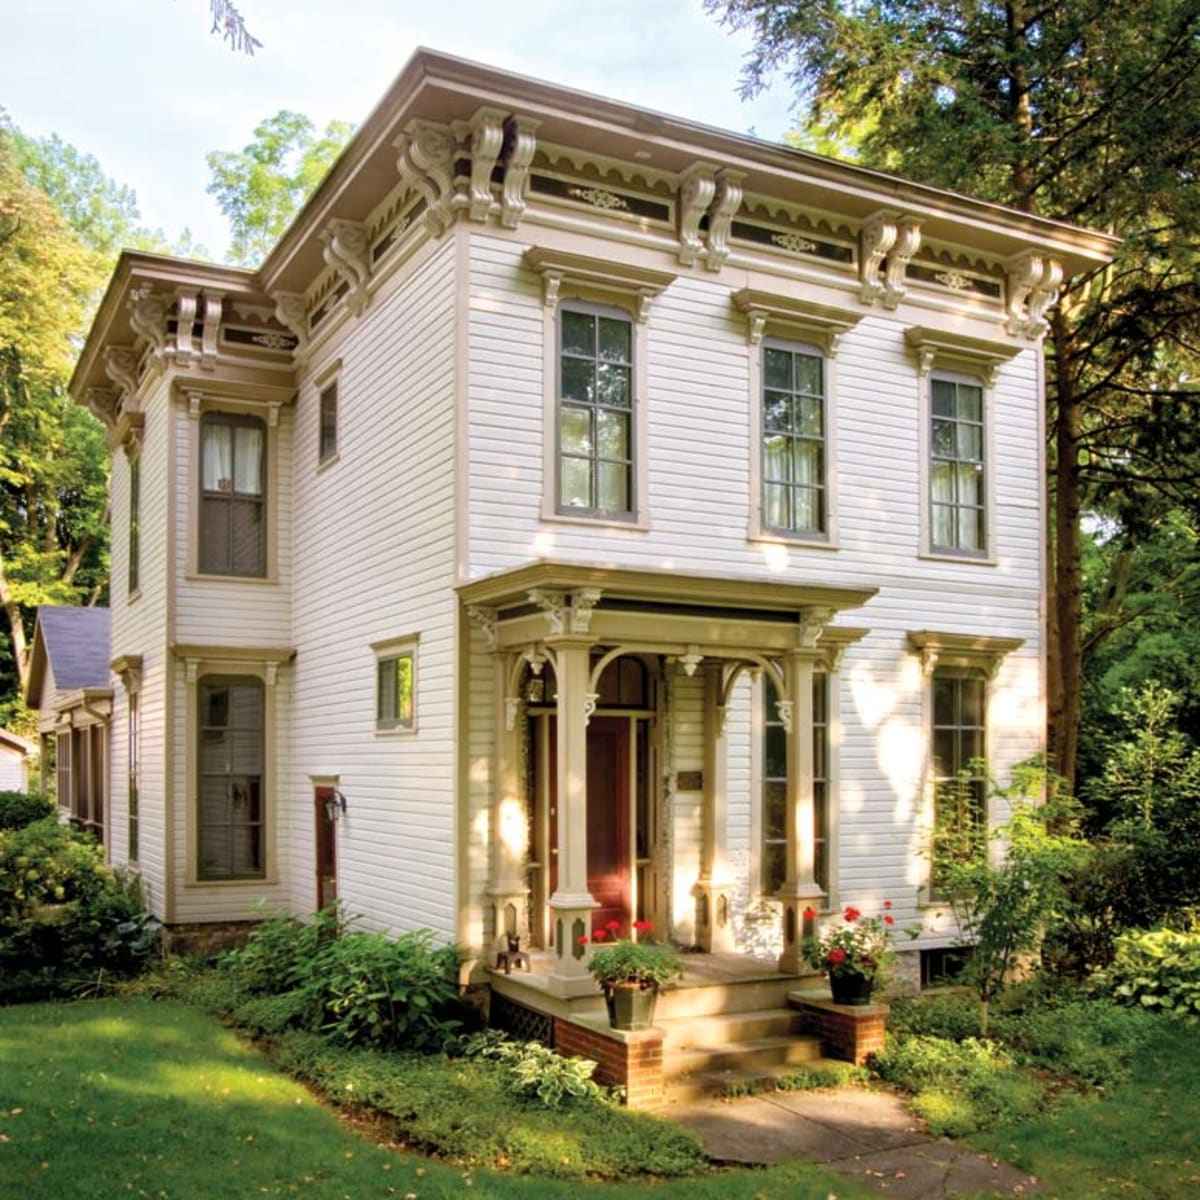 Painted in the warm earth tones typical of the period, this Michigan Italianate is  bursting with ornamentation.